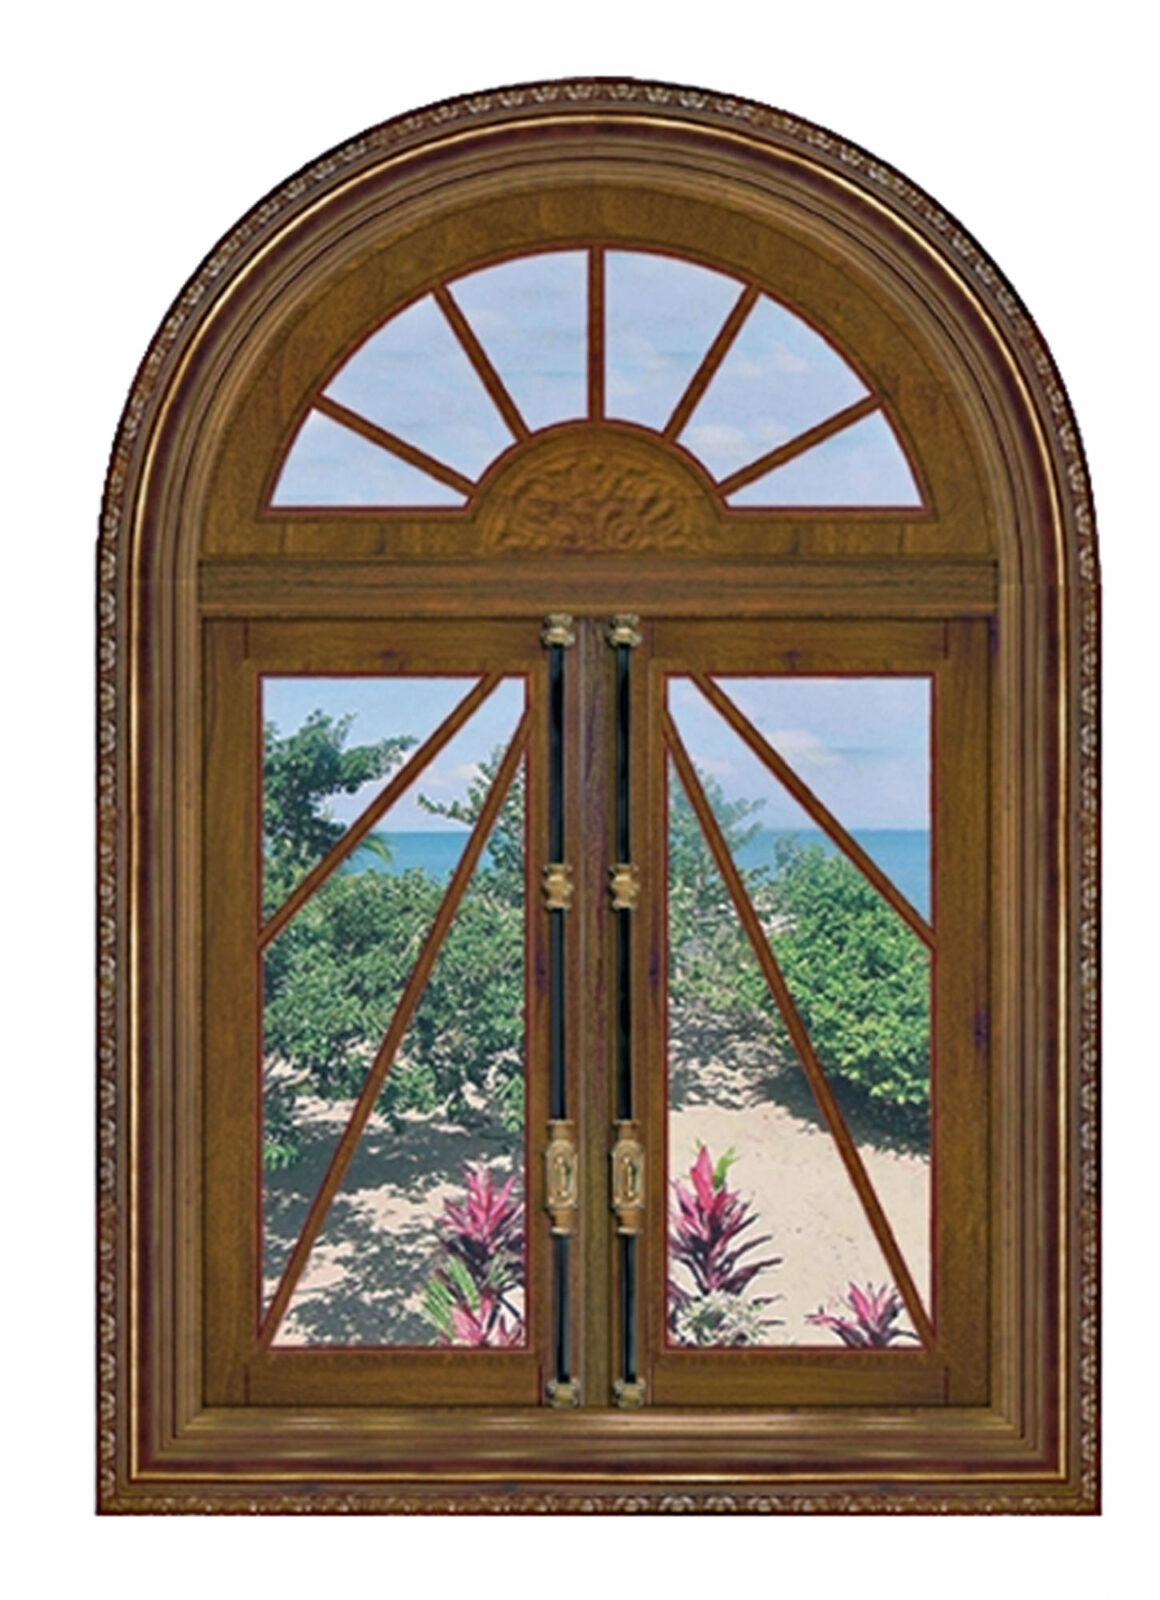 SUNBURST MAHOGANY WINDOW